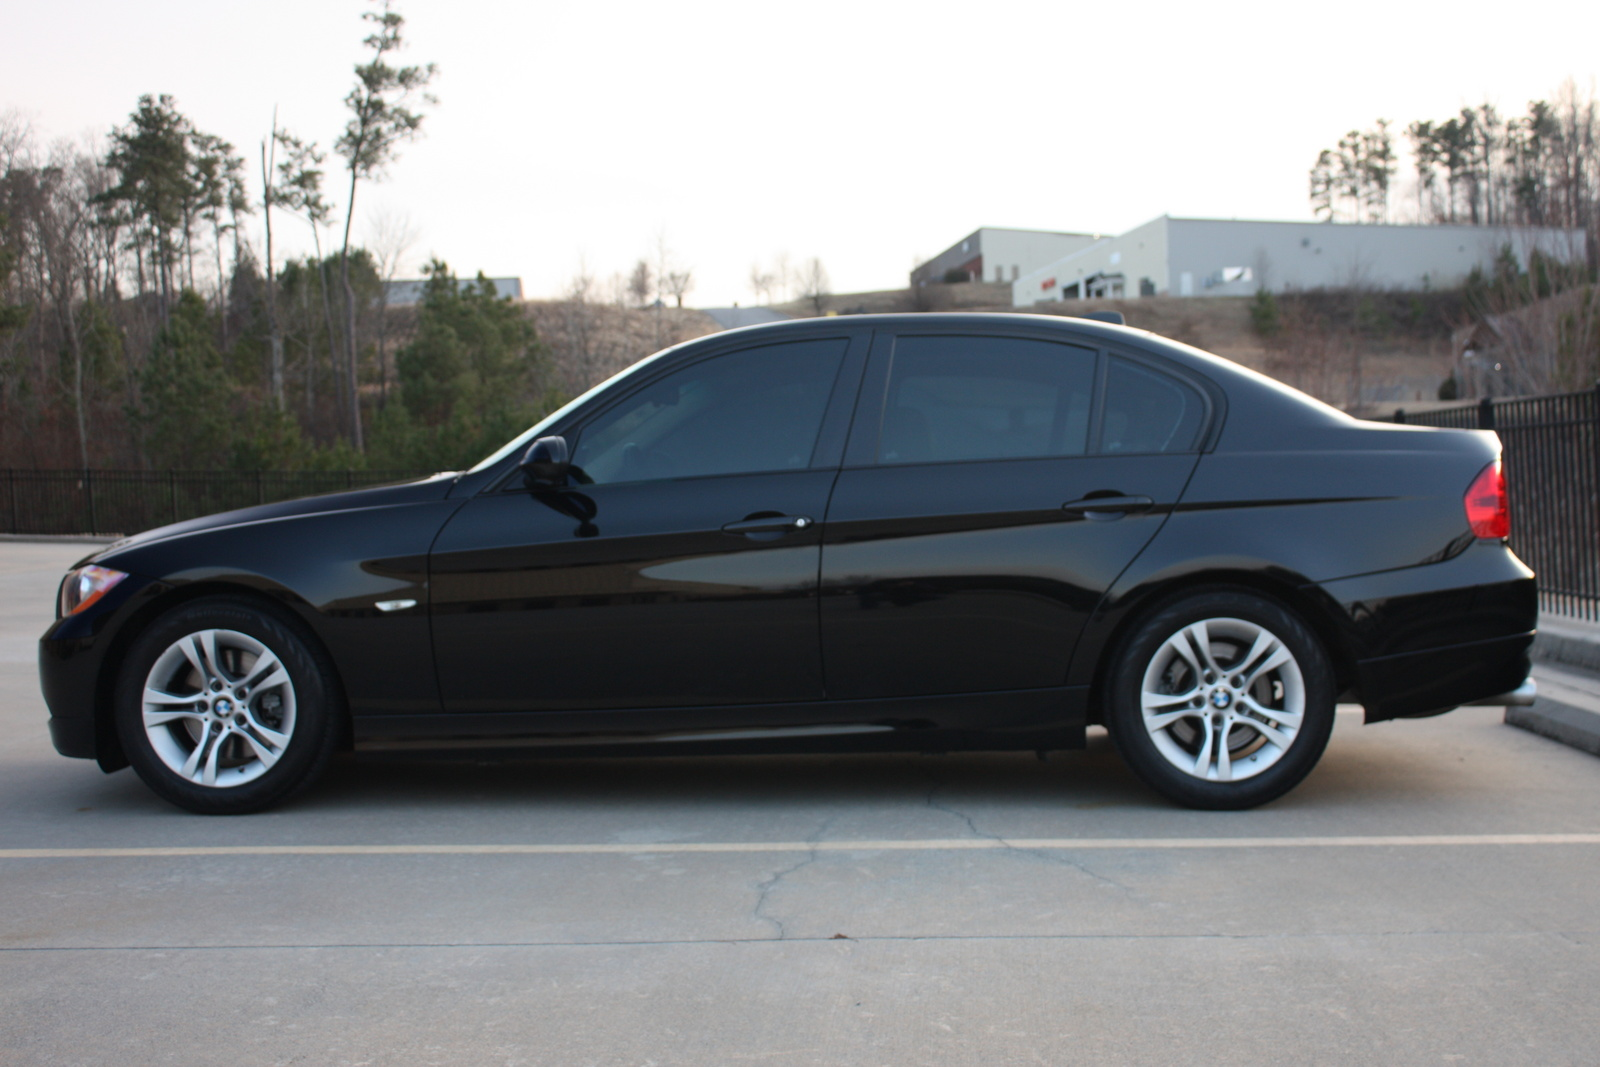 BMW 3 series 328xi 2008 photo - 5